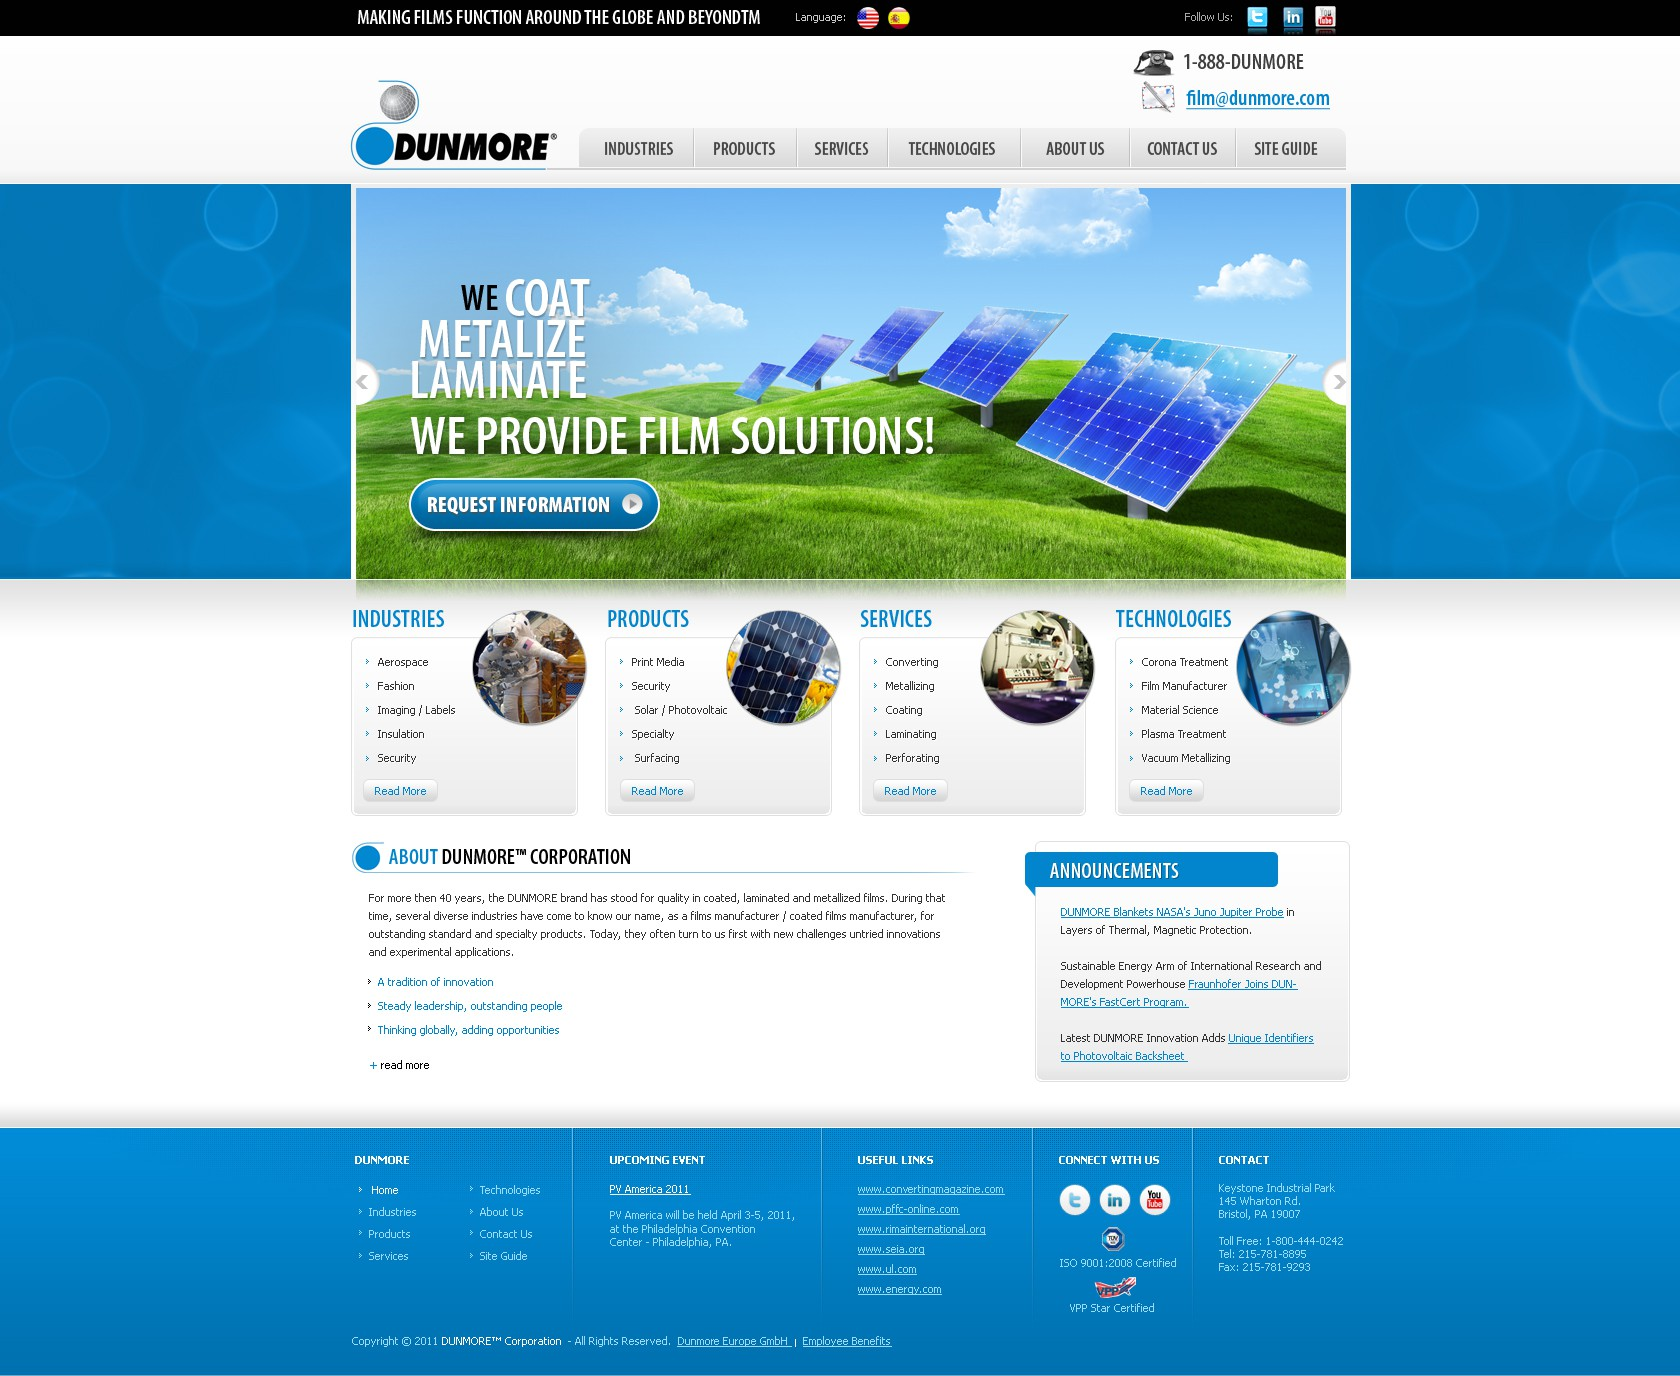 New website design wanted for DUNMORE Corporation